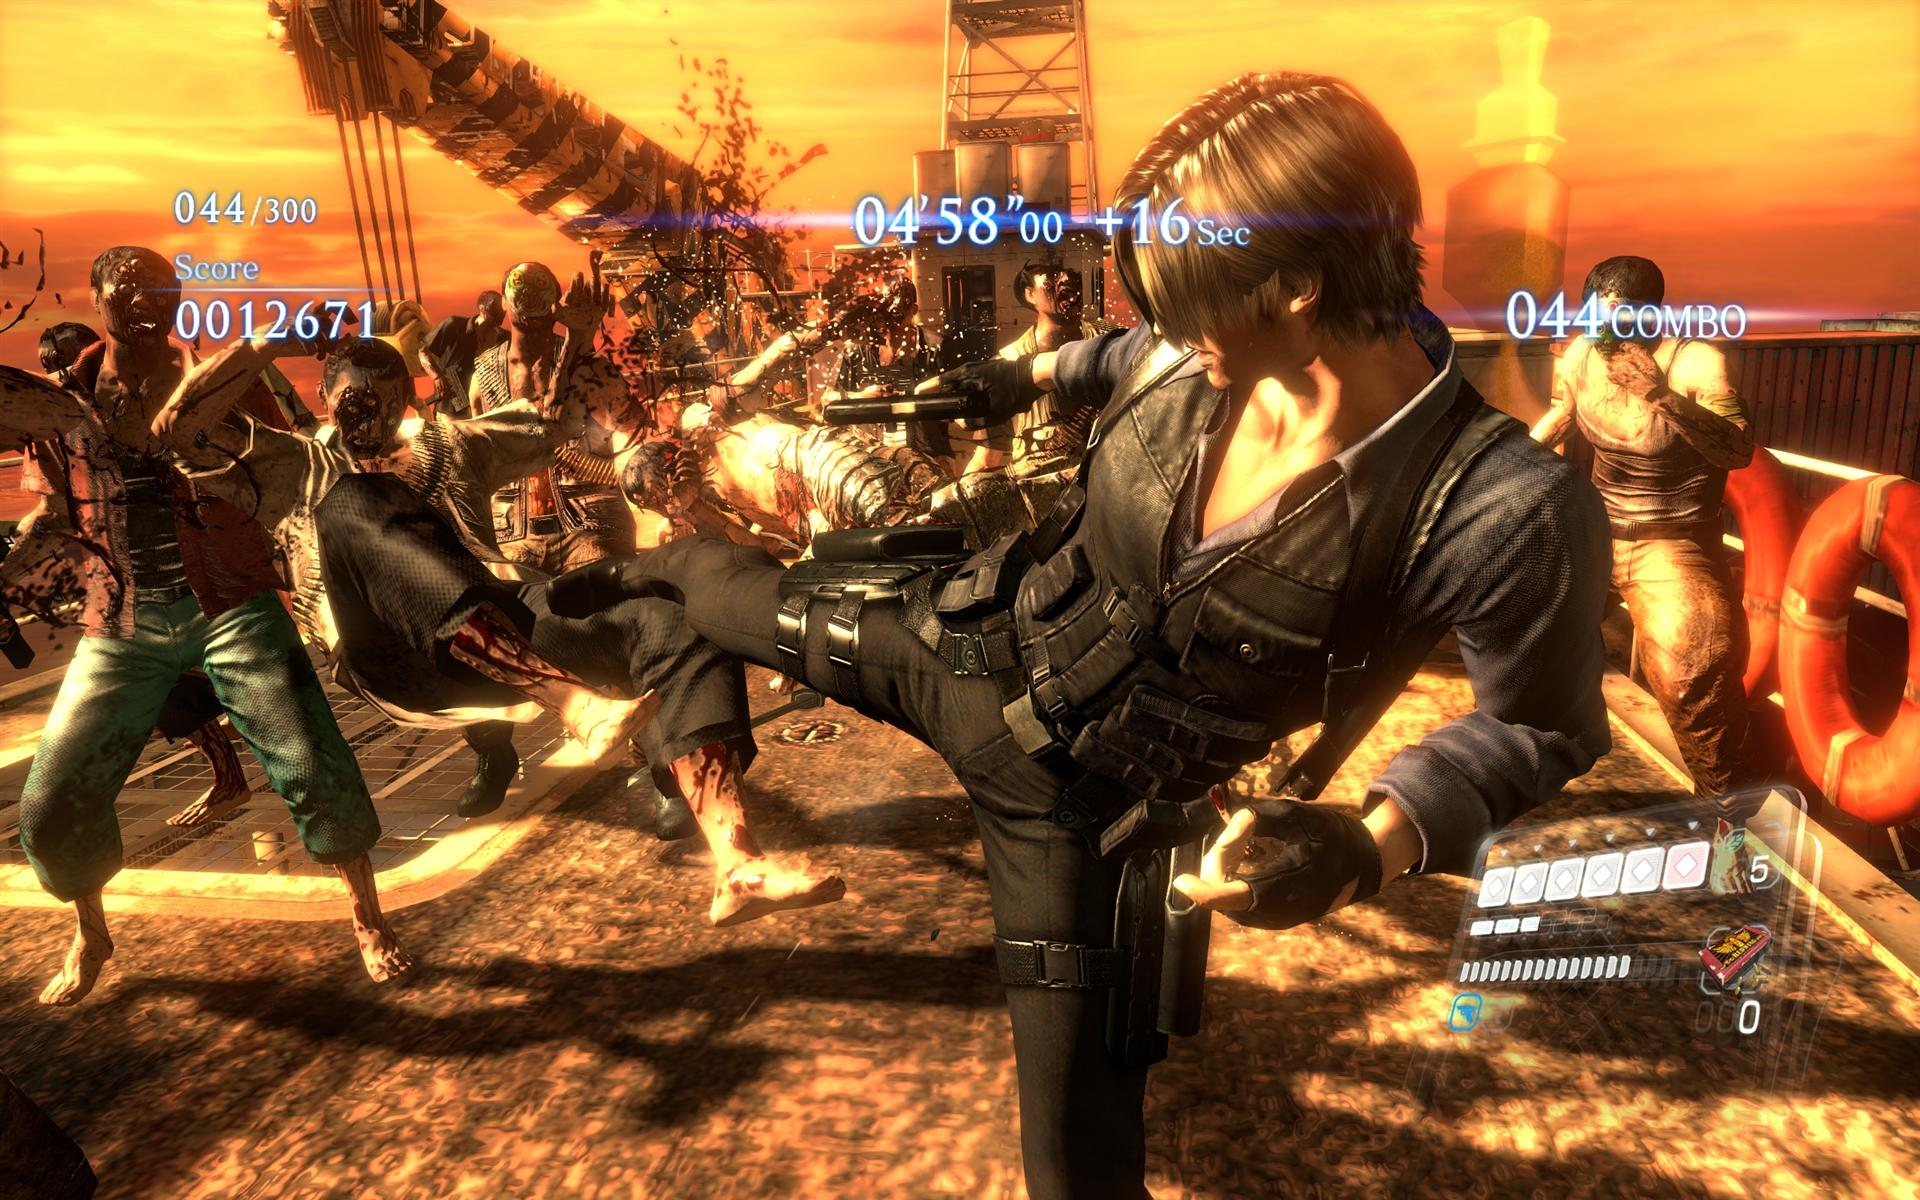 Resident Evil 6 Pc Will Have Exclusive No Mercy Mode Gameplay